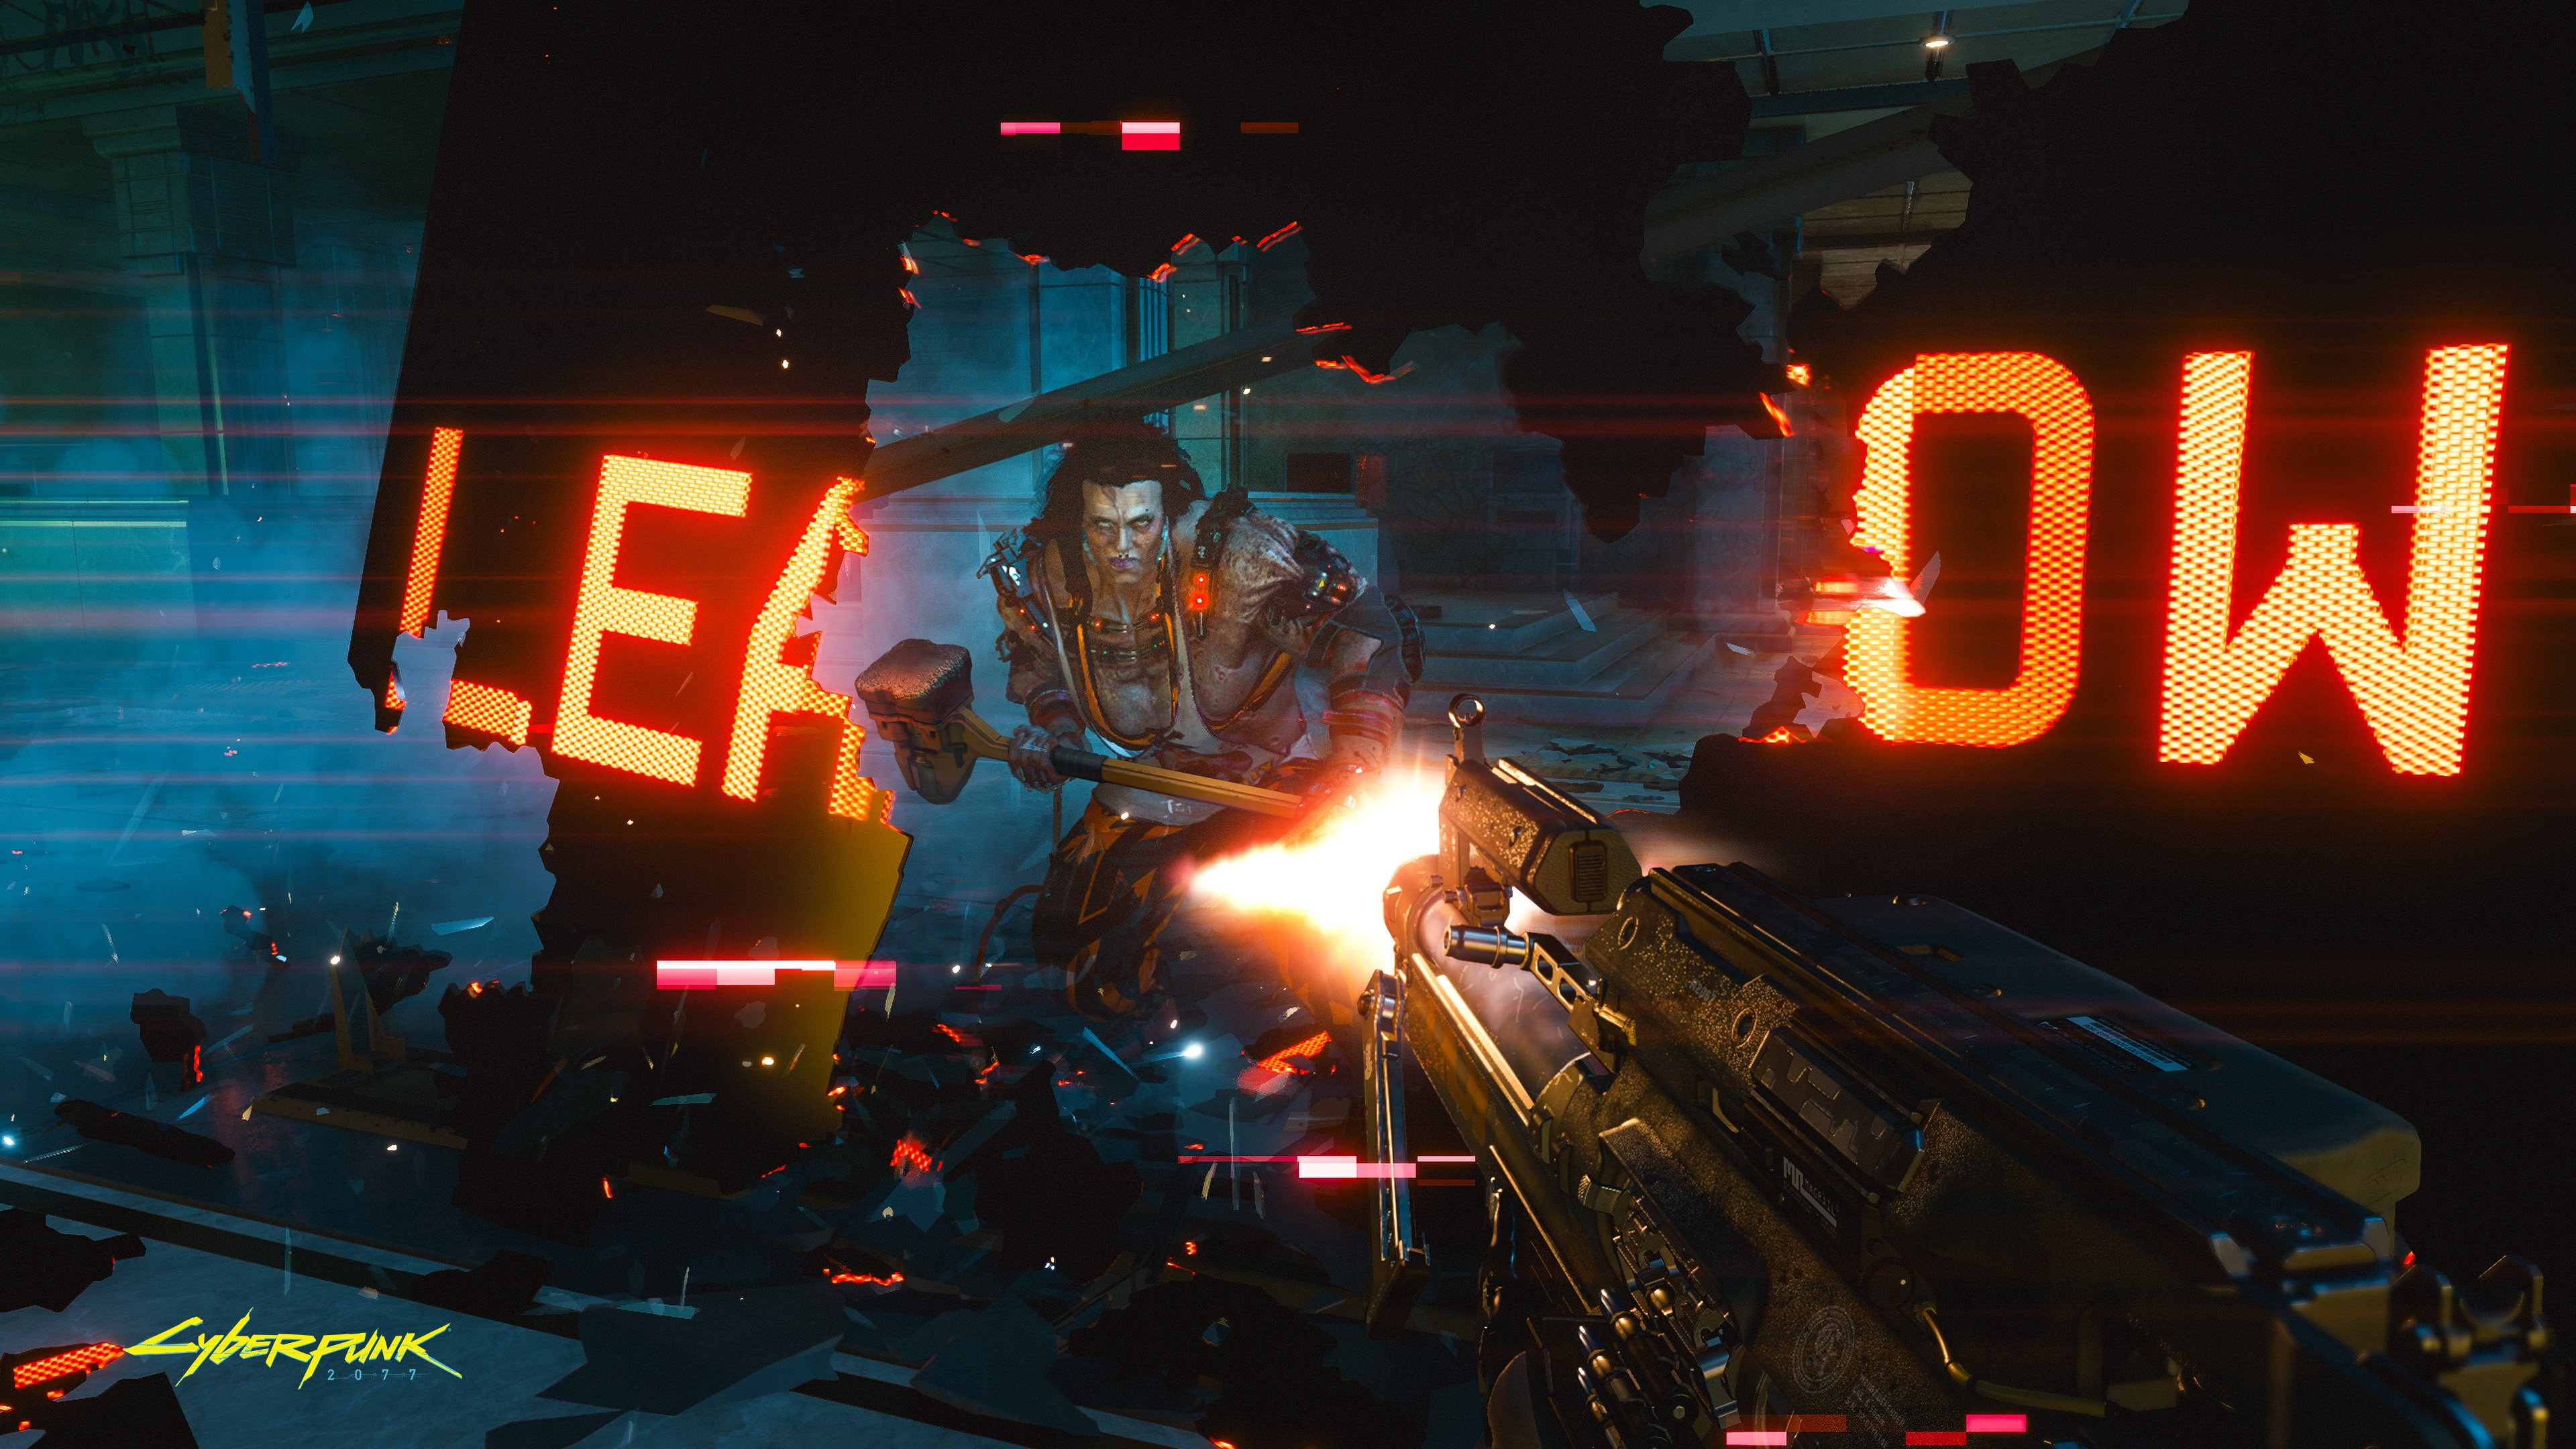 Cyberpunk 2077 - New 4k Screenshots and Details